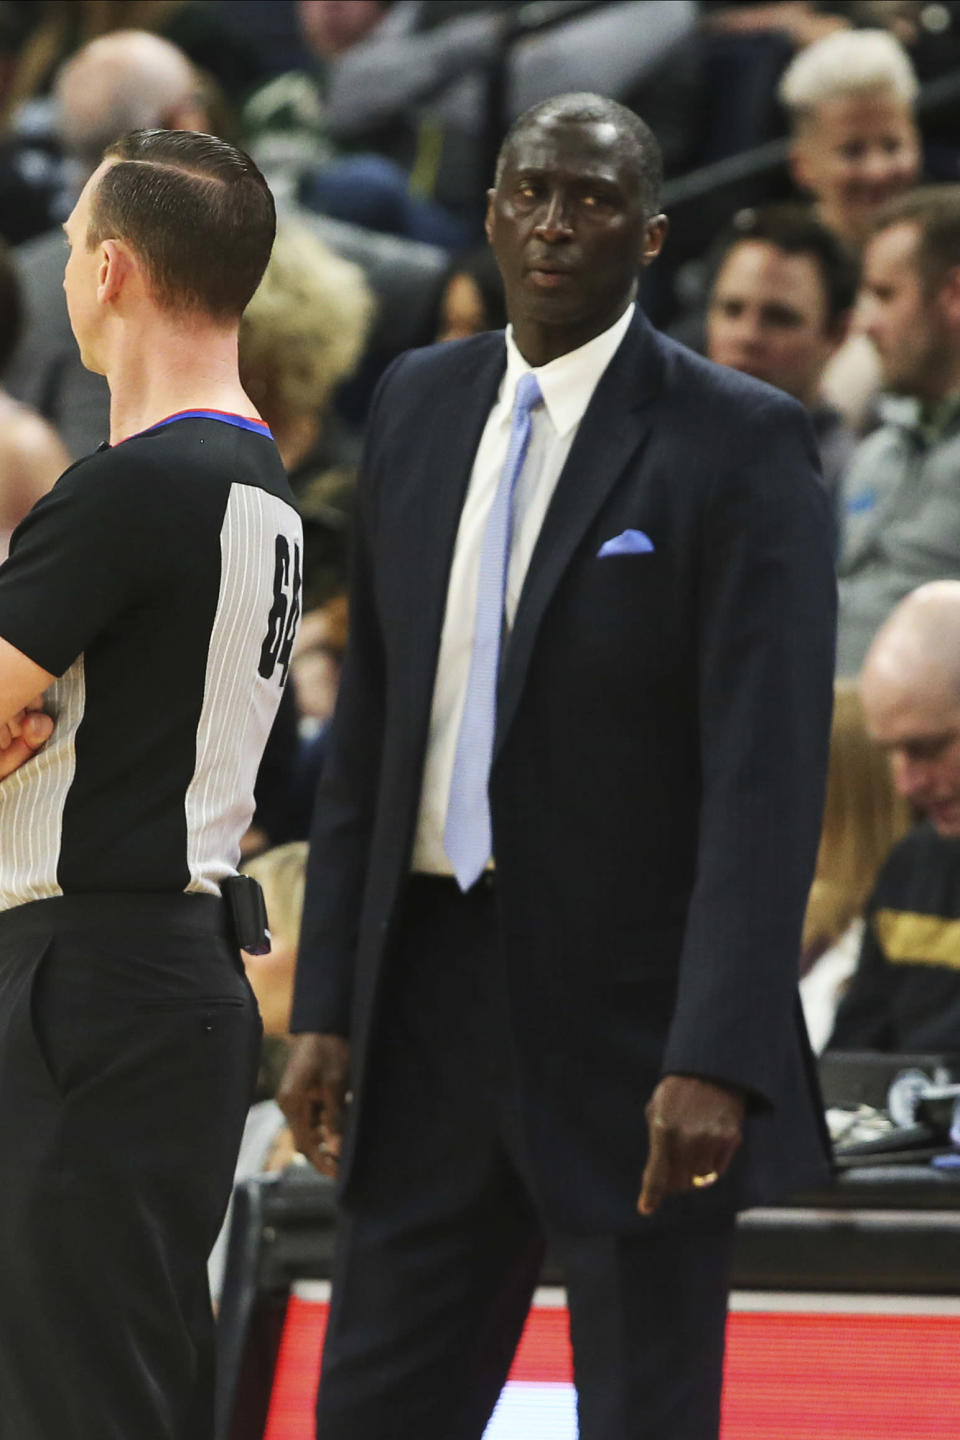 Orlando Magic assistant coach Tyrone Corbin looks on after replacing head coach Steve Clifford in the second half of an NBA basketball game against the Minnesota Timberwolves, Friday, March 6, 2020, in Minneapolis. (AP Photo/Jim Mone)